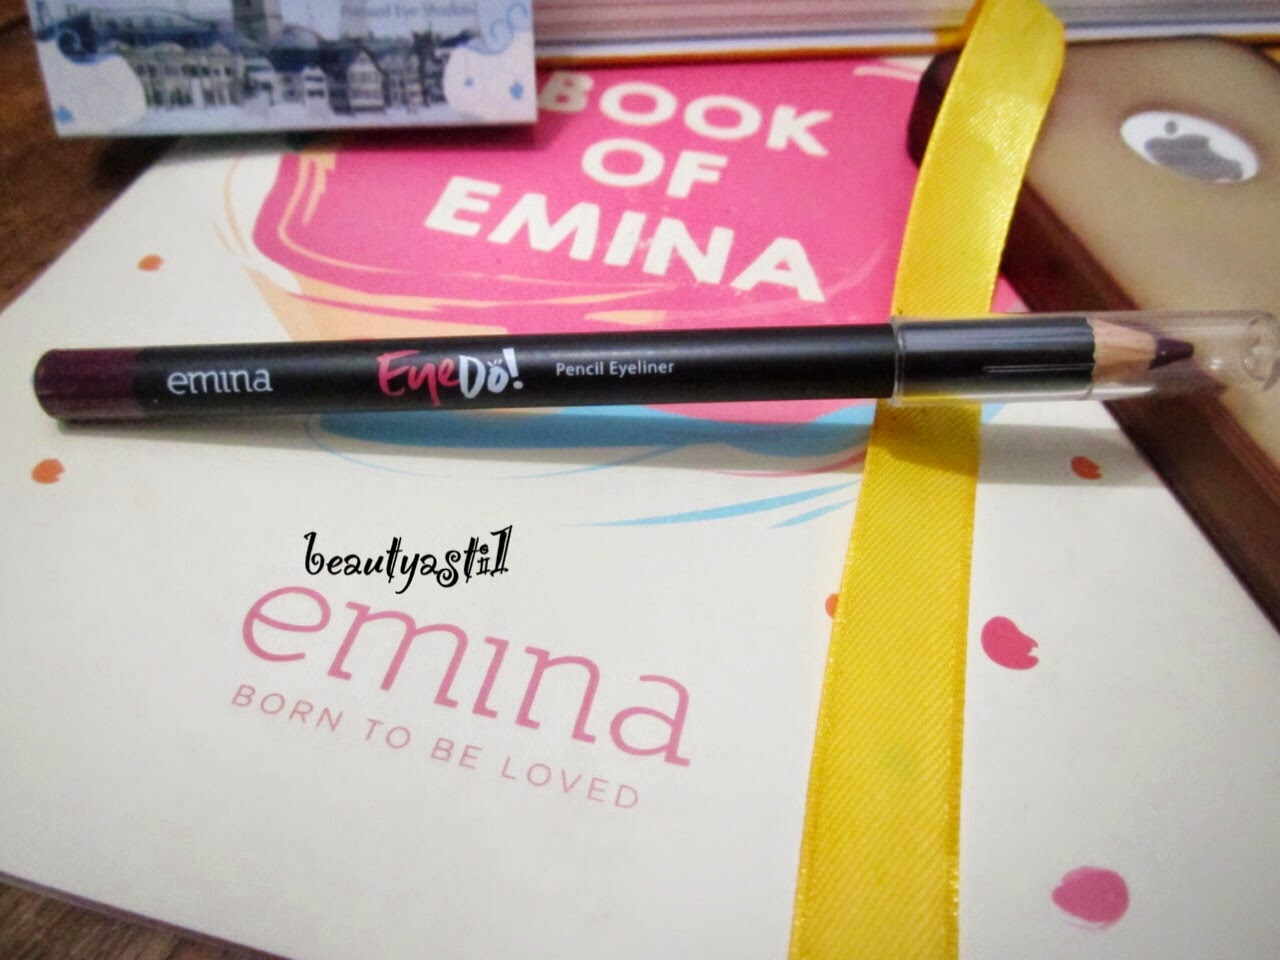 emina-eye-do-pencil-eyeliner-review.jpg